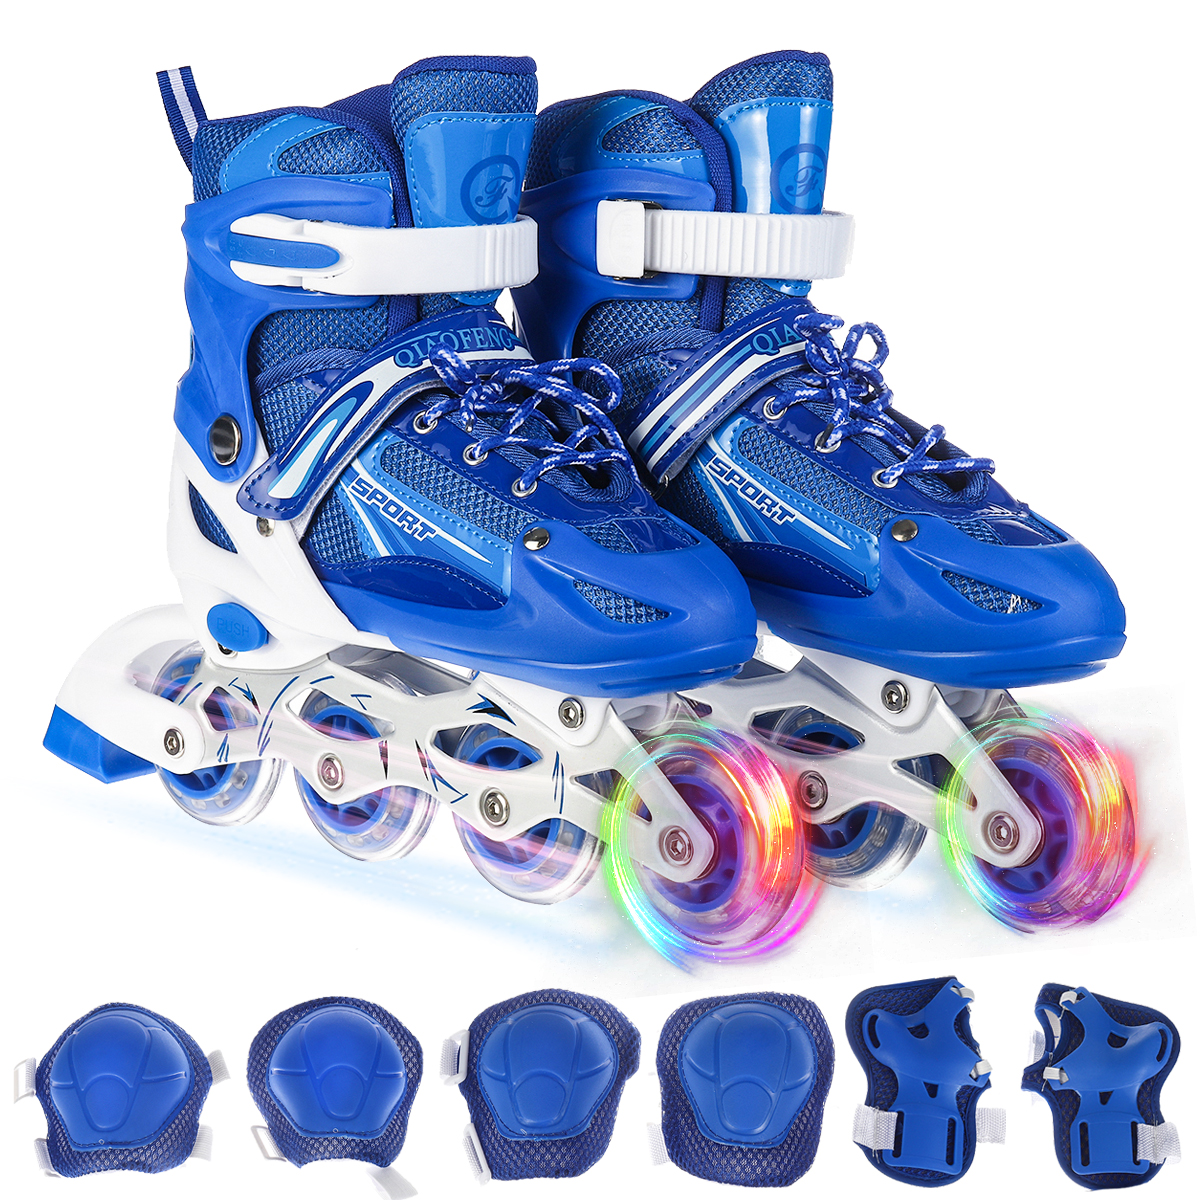 PRESNO Adjustable Inline Skates for Girls and Boys Pink//Blue with Full Light Up Wheels Fun Illuminating Roller Skates Blading for Kids and Youth,Men and Women